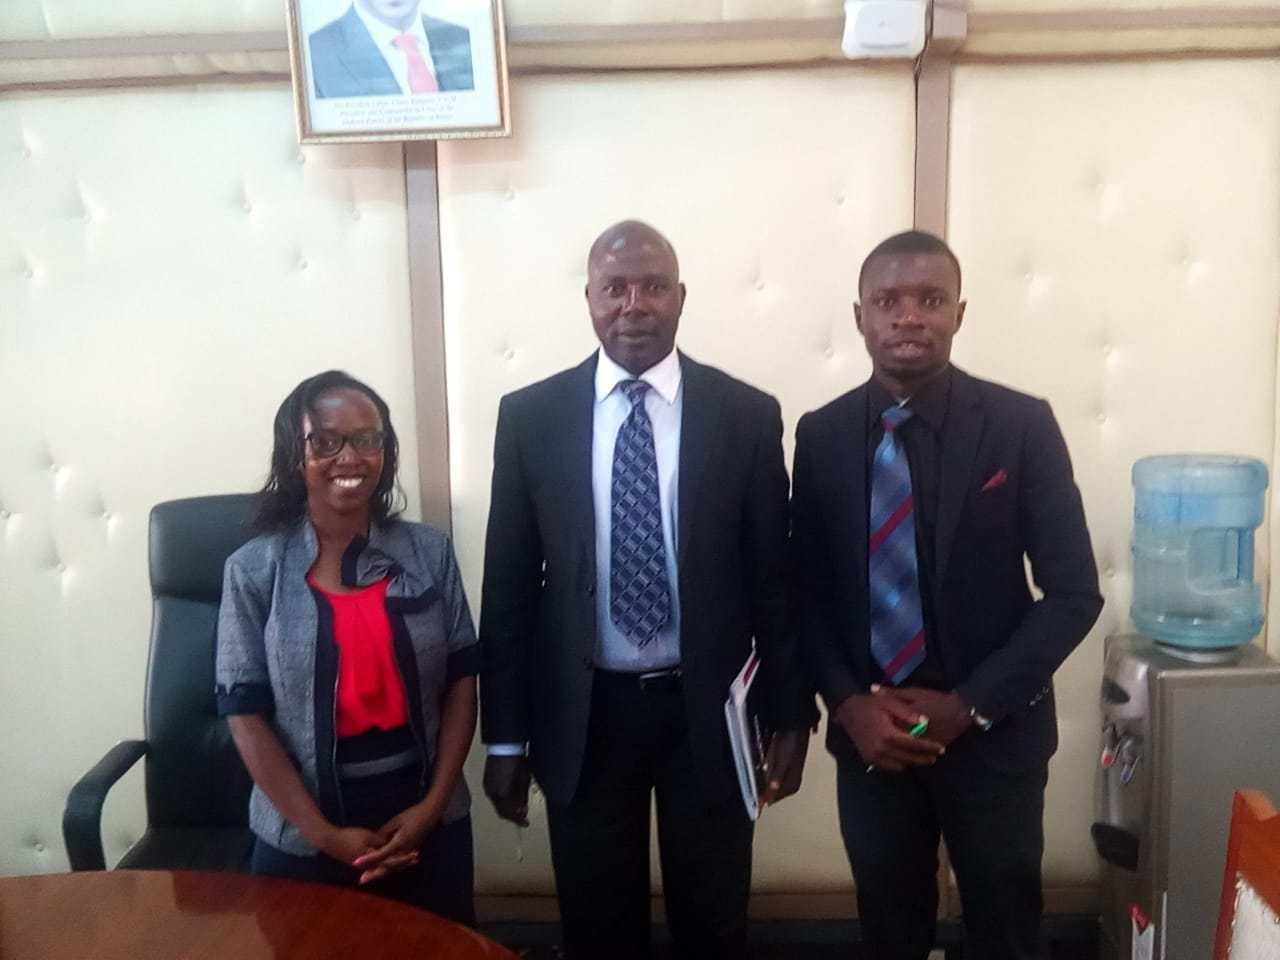 Nelson Bwire [R], founder of the newly-registered Gaming Awareness Society of Kenya, with Oluoch Ngicho [C], chief gaming inspector with the Kenyan Betting Control and Licensing Board (BCLB), and a colleague (February 2019)